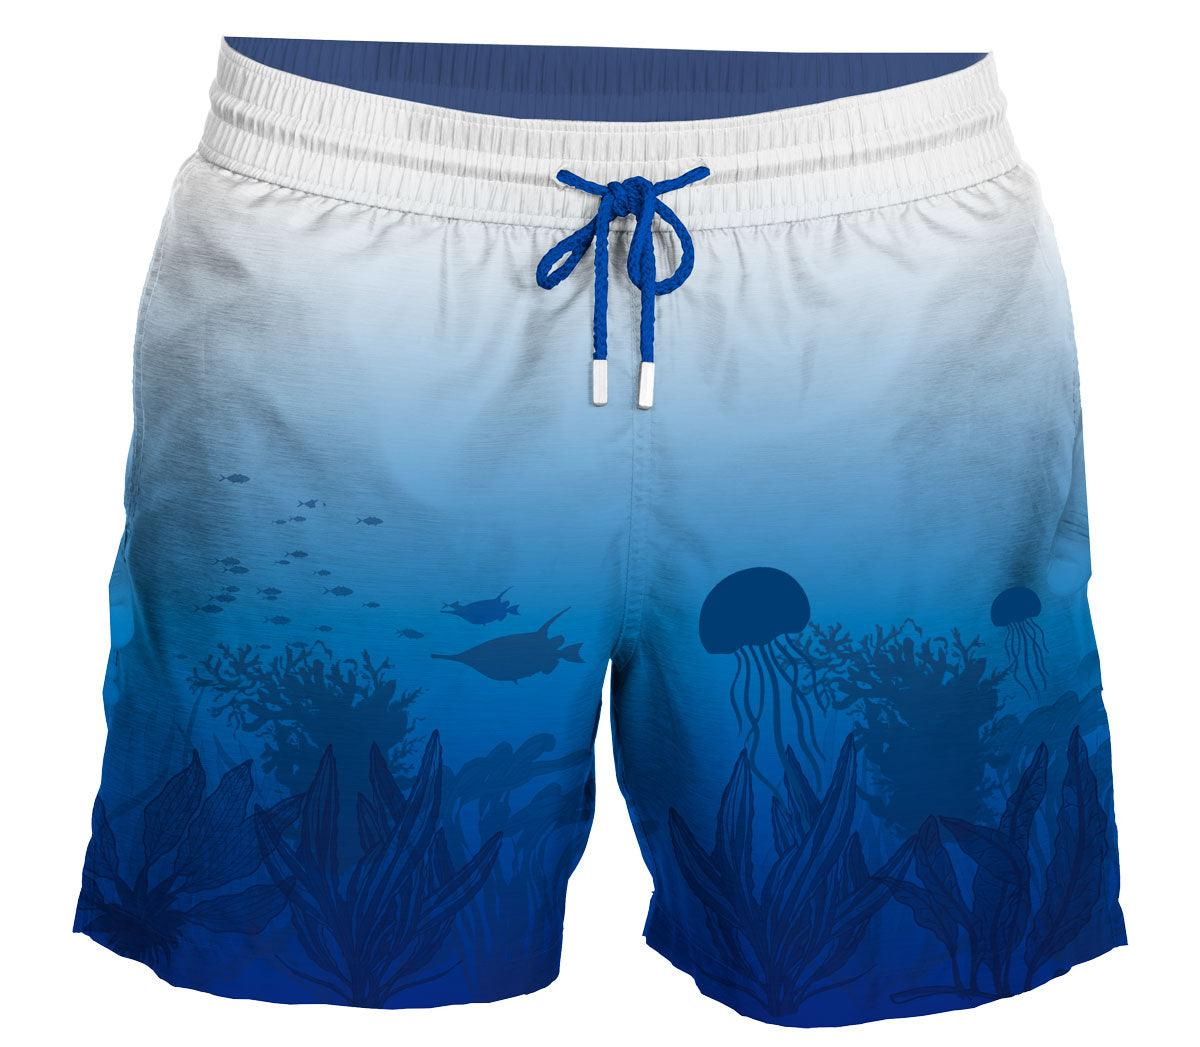 26a8484685939 Mens Designer Swim Trunks | Men's Swim Trunks | Le Club Original